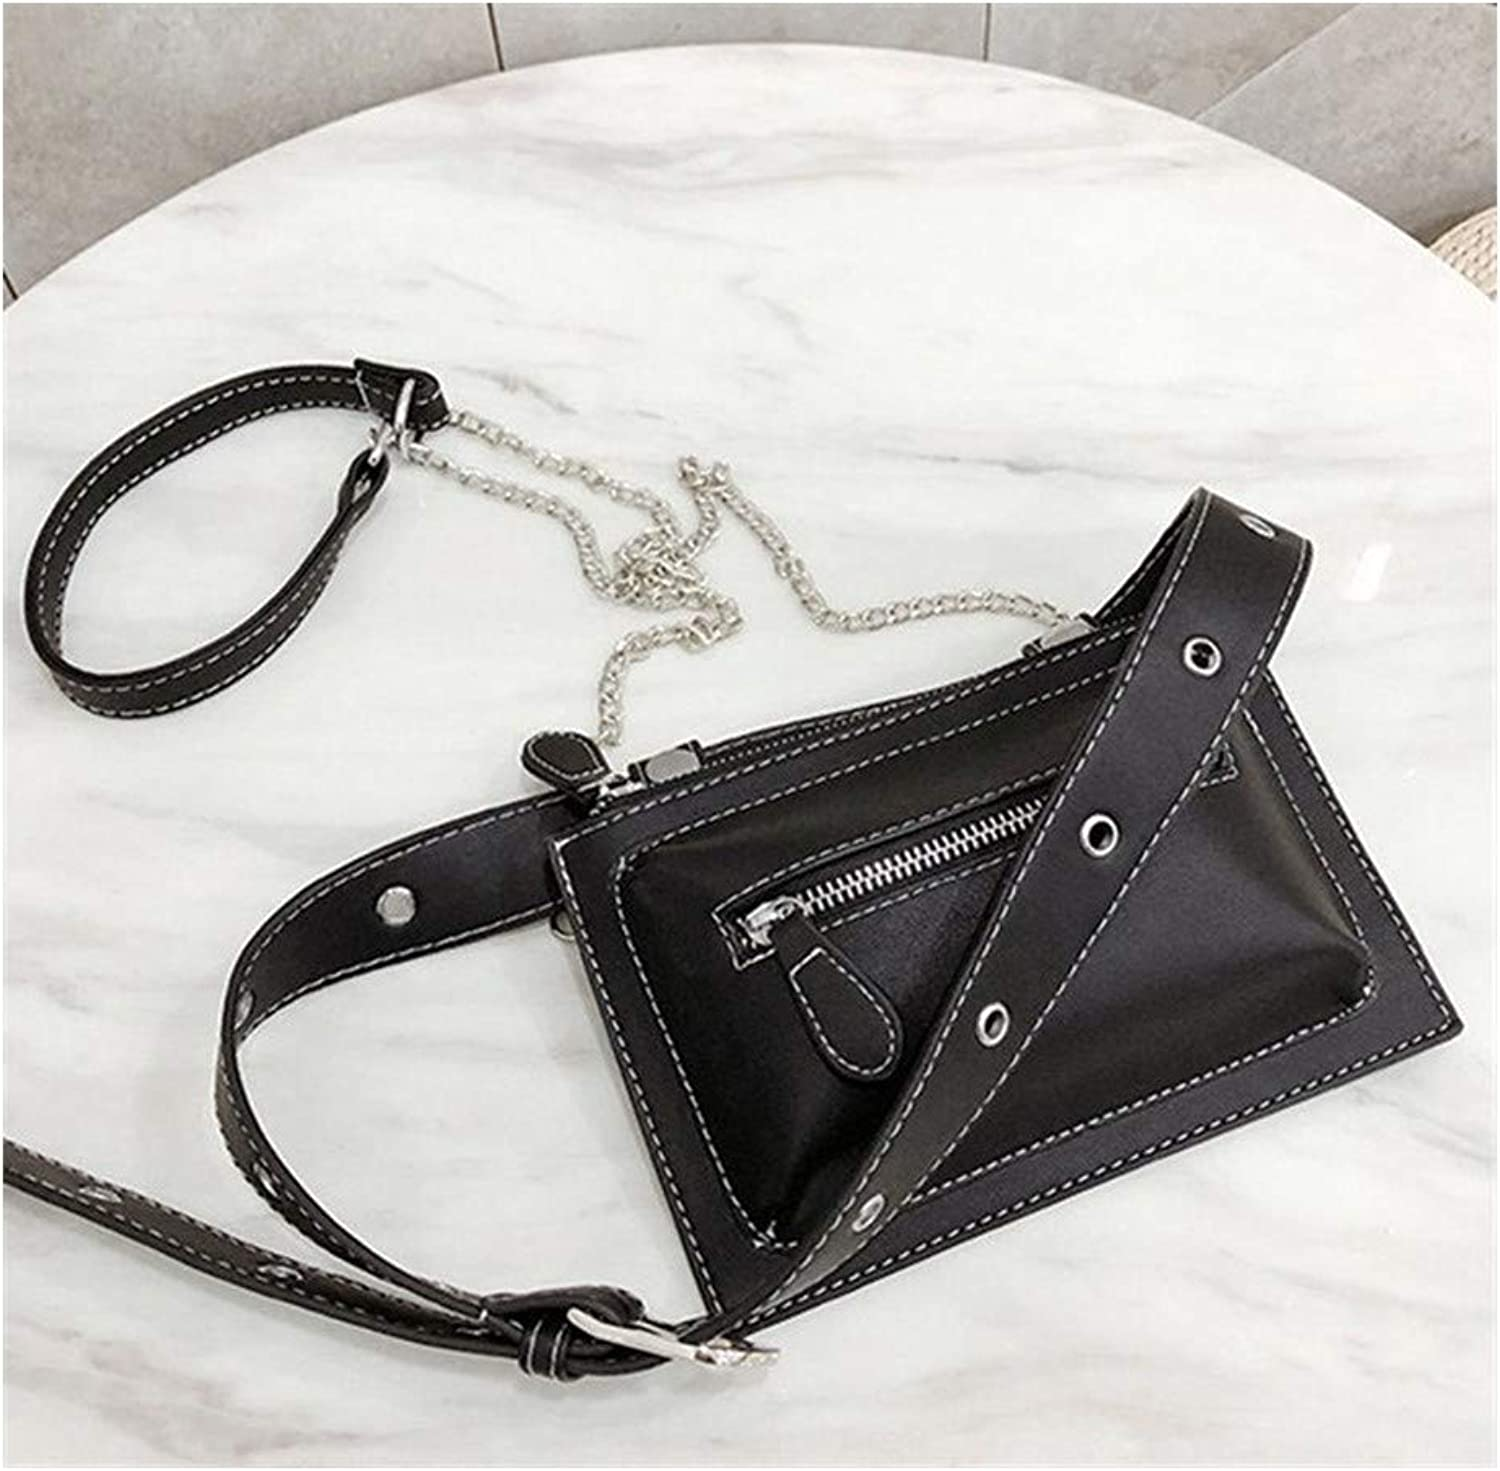 Waist Pack Fashion Women Waist Bag Pu Leather Fanny Pack for Female Girl Travel Belt Bag Newest Chest Bags Chain Shoulder Bag